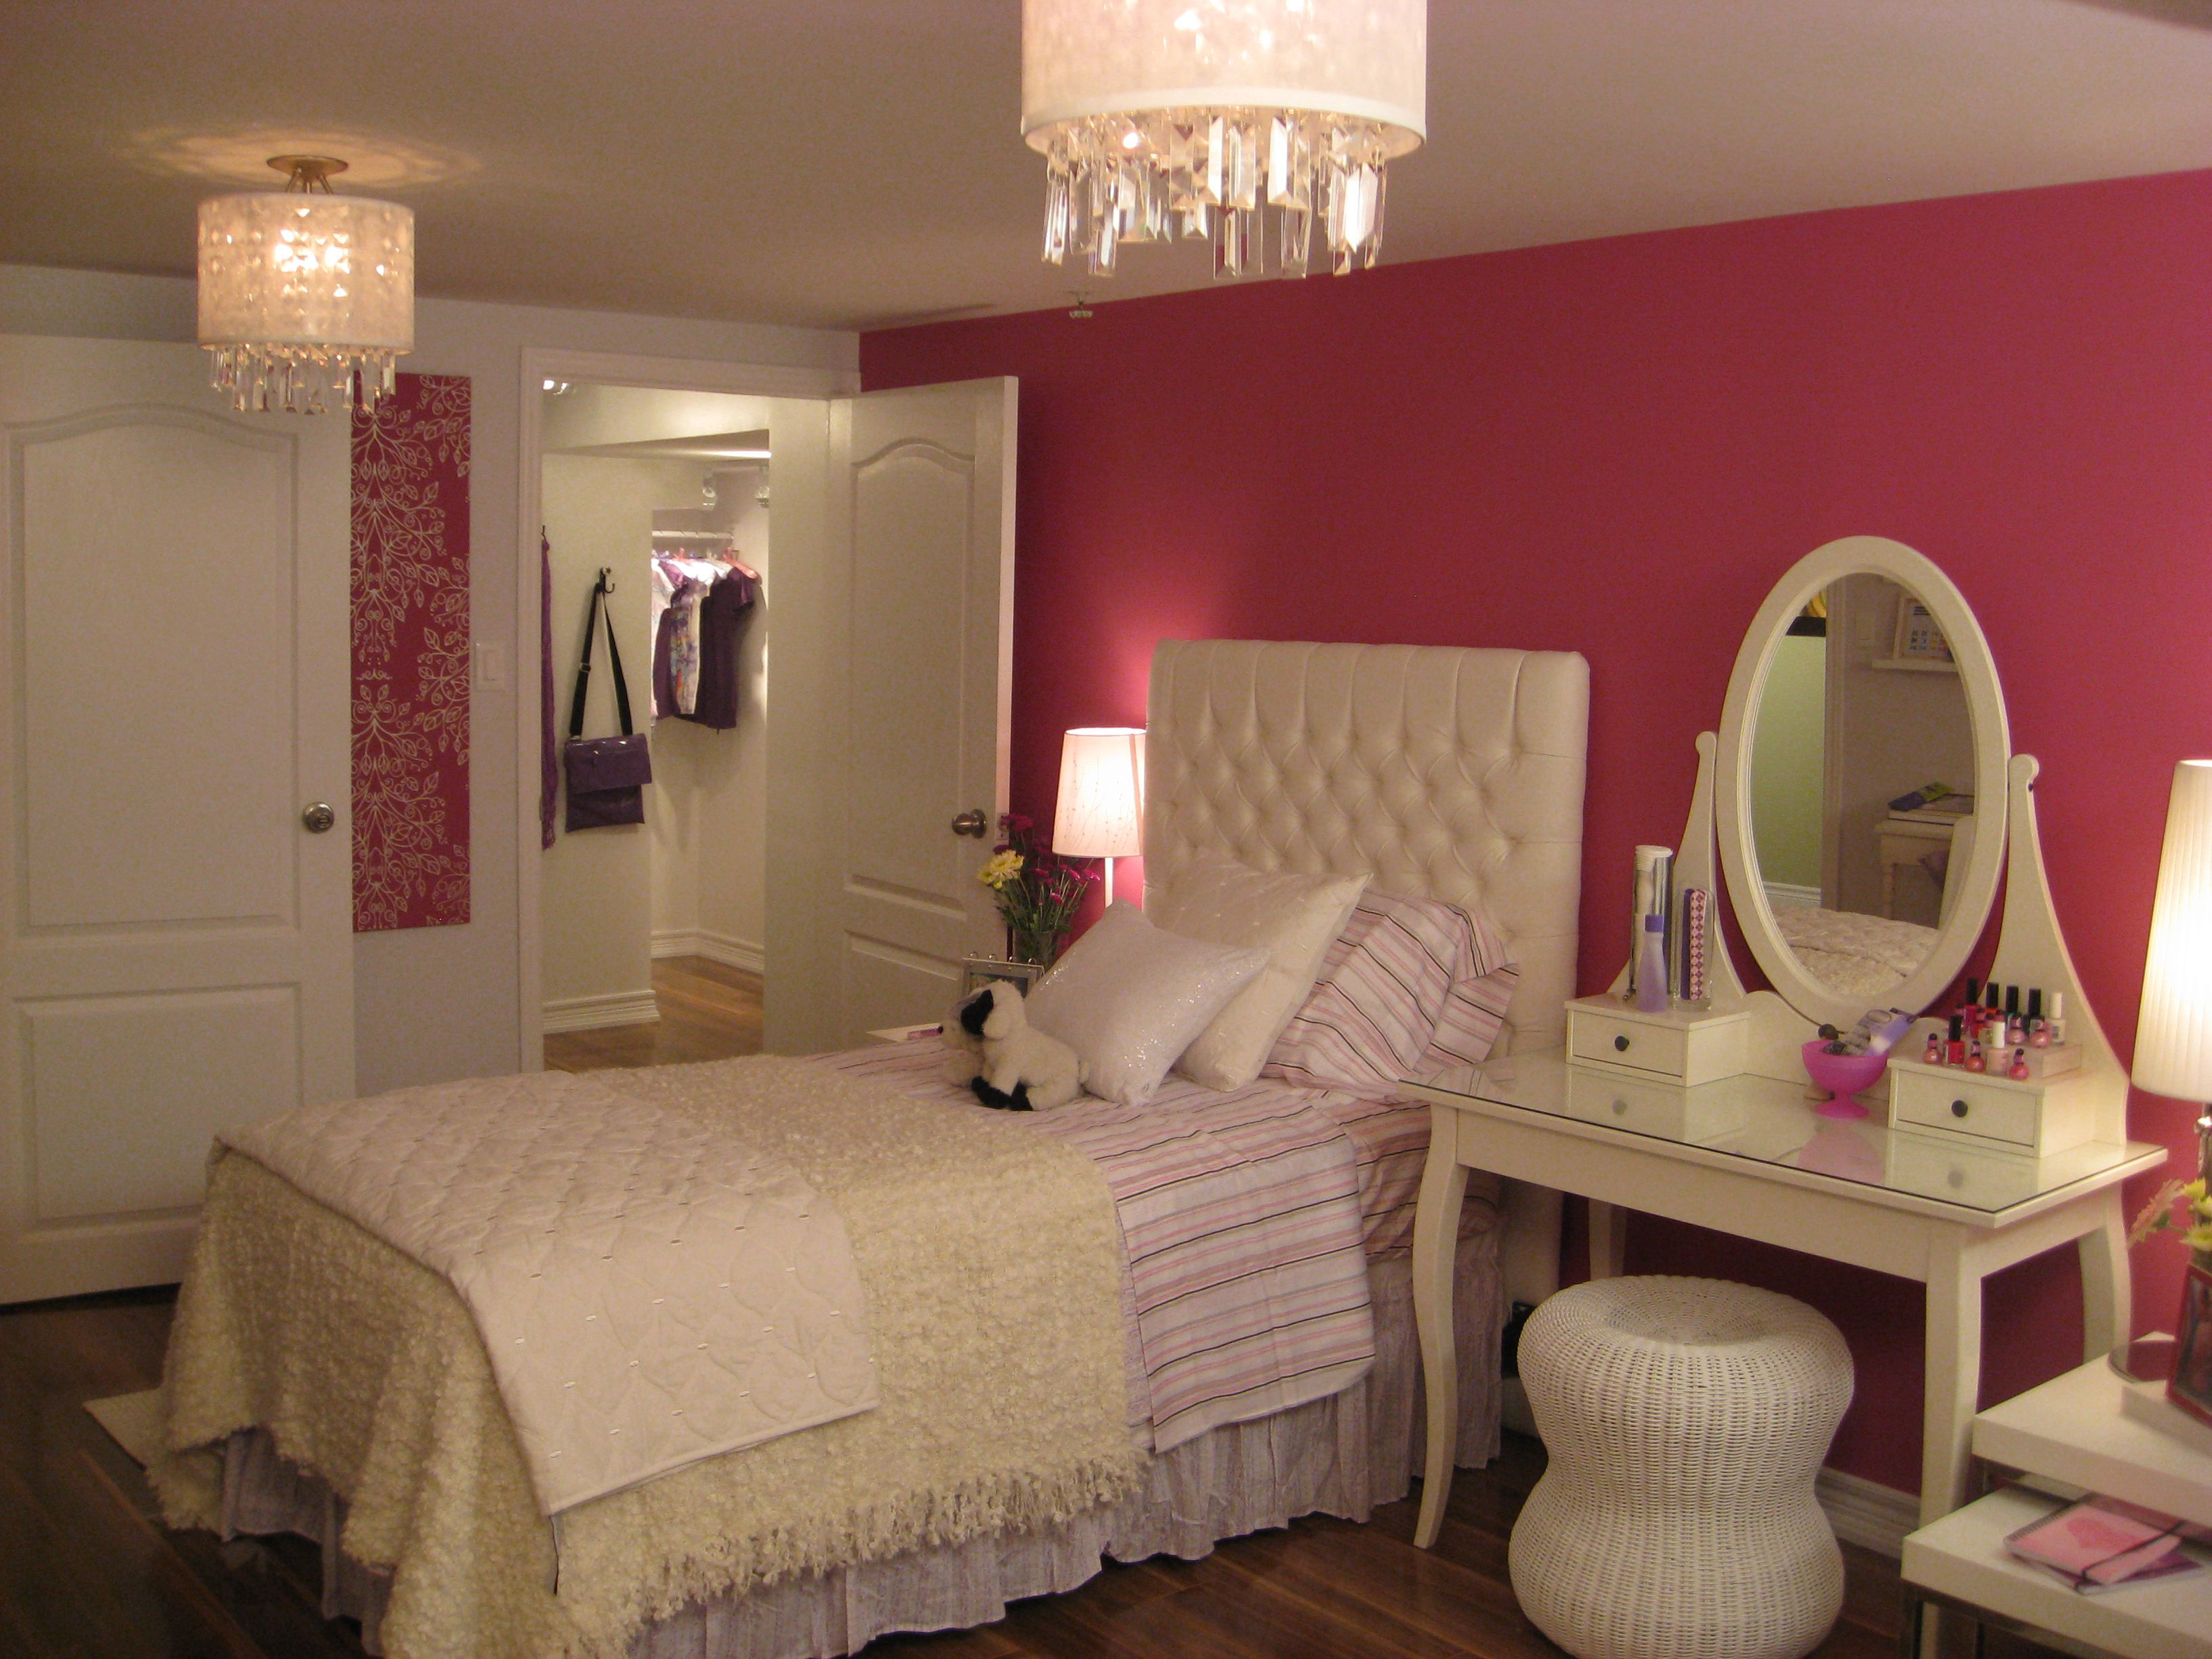 Pretty Bedroom Decor Using Chandelier Also Cute Bed Beside Table